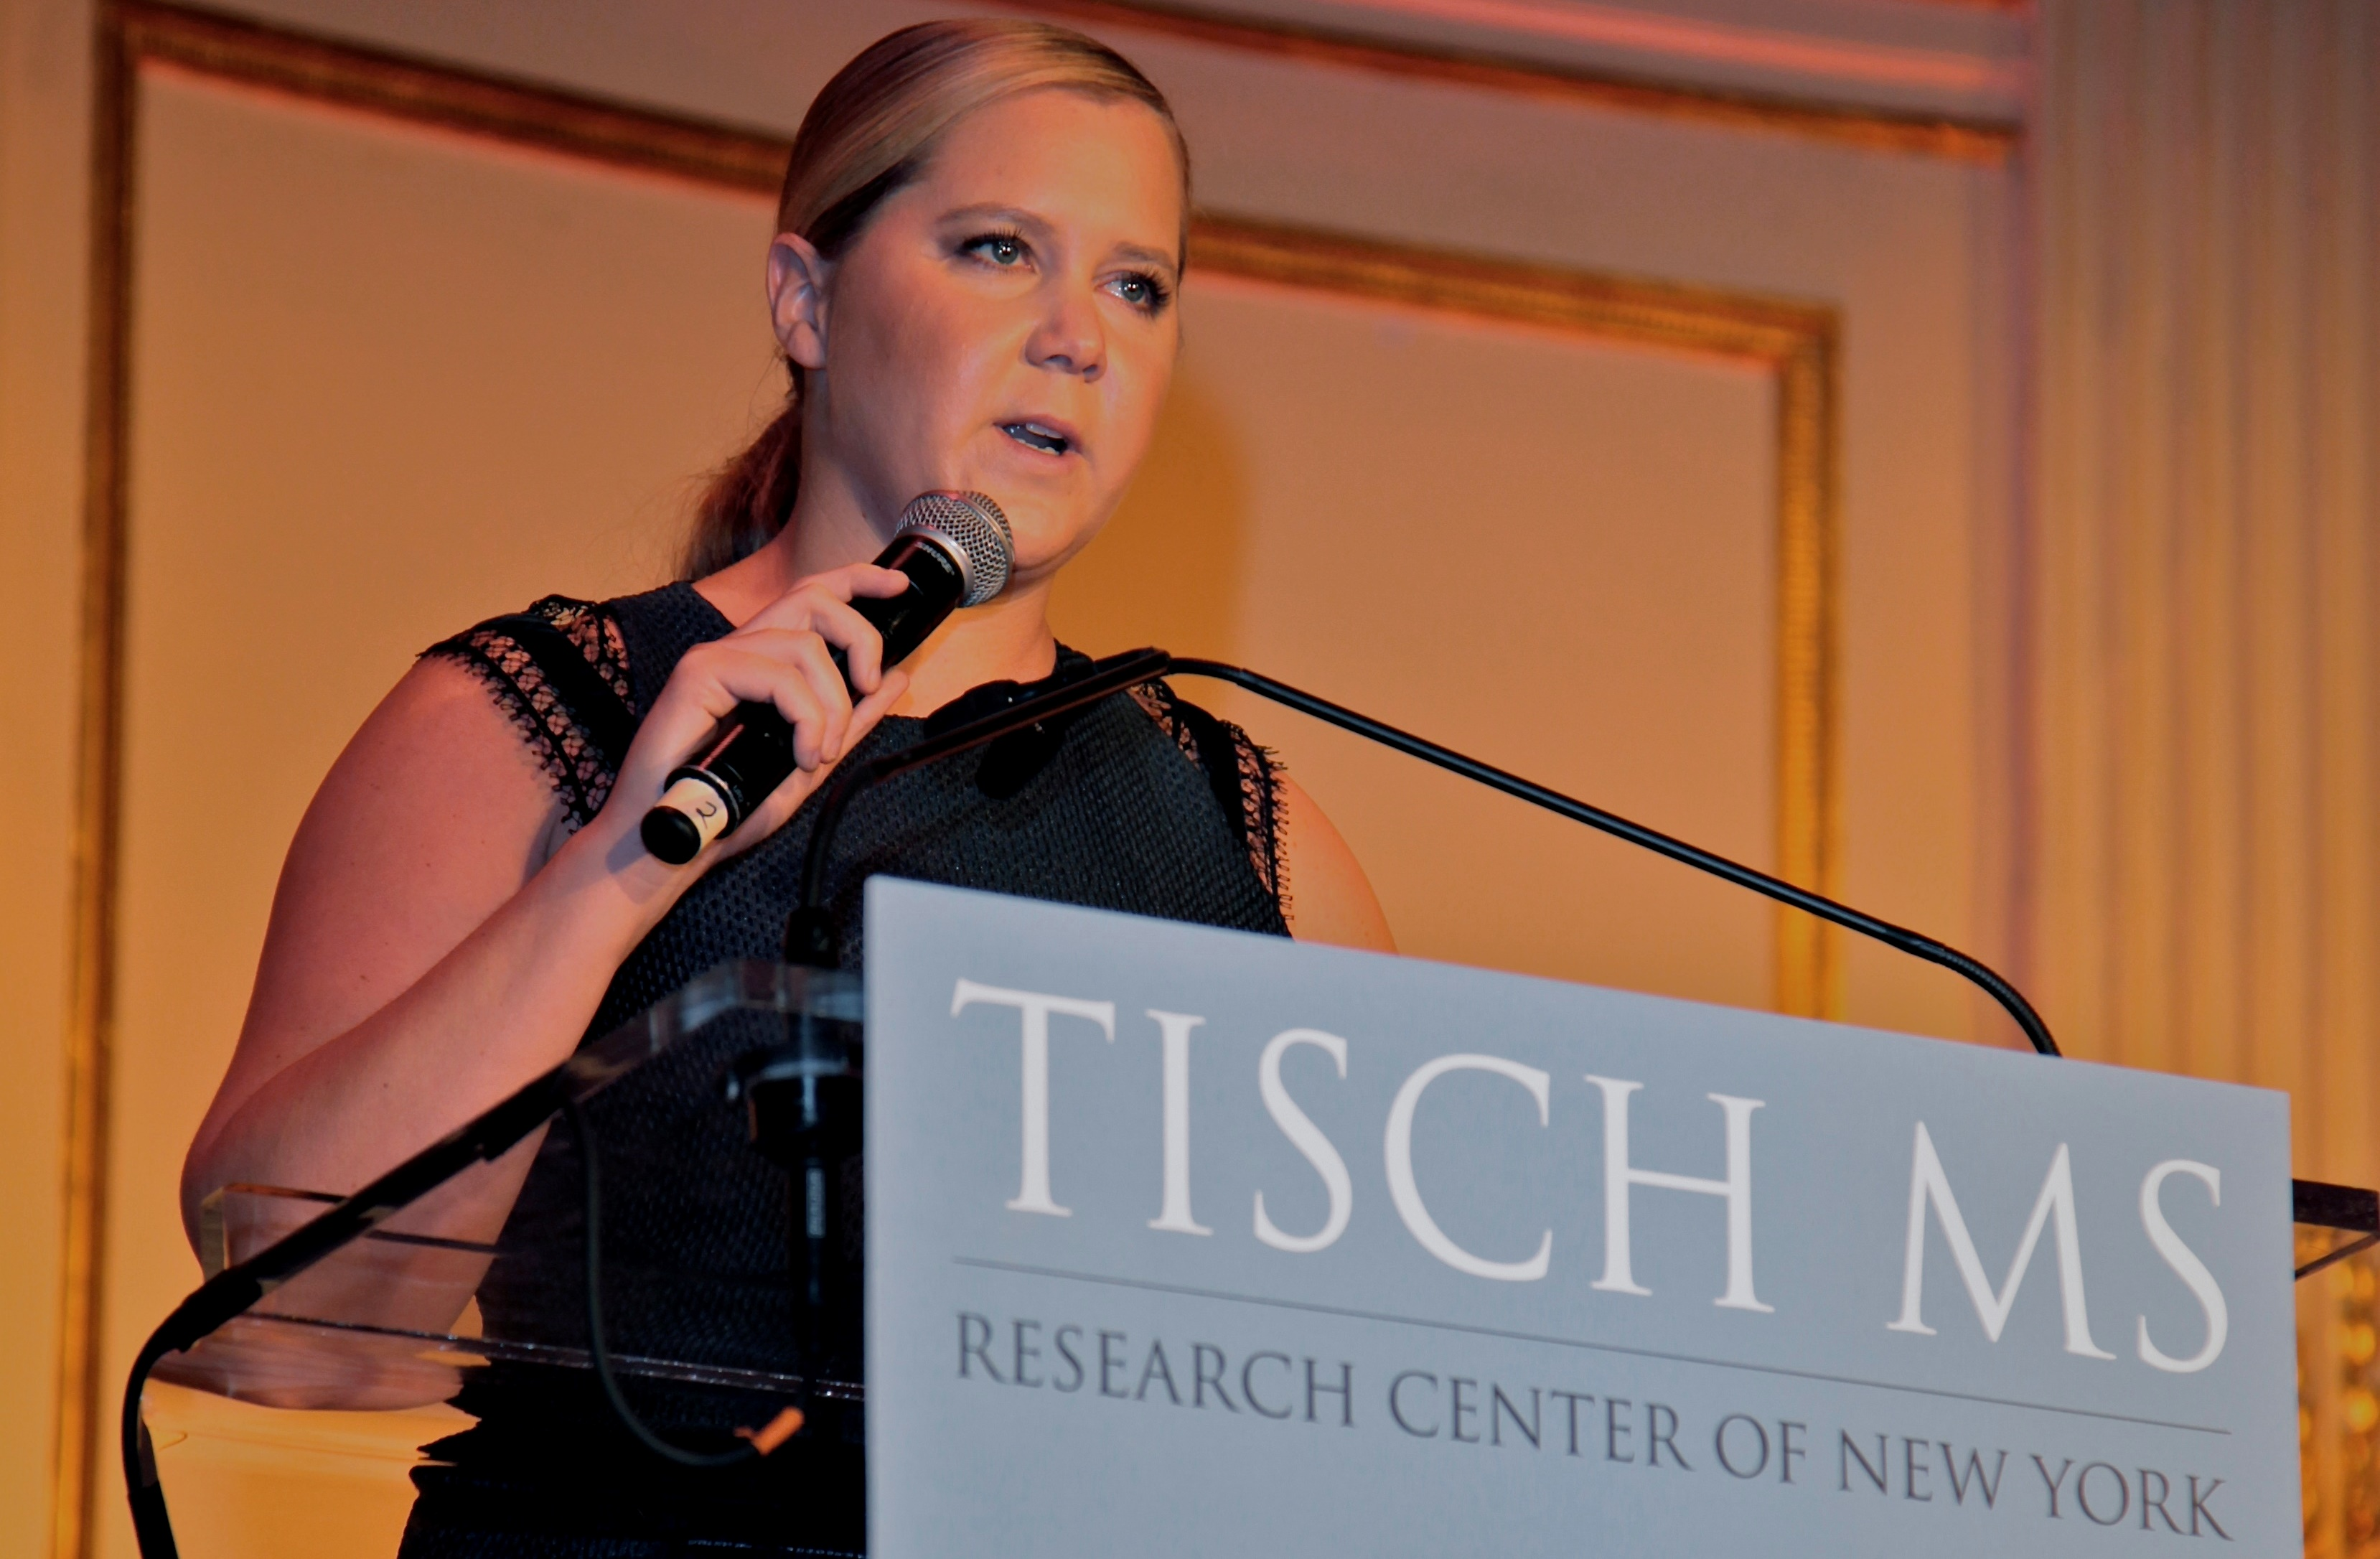 AMY SCHUMER AND PAUL SHAFFER JOIN FORCES TO RAISE $2.5 MILLION FOR MS RESEARCH